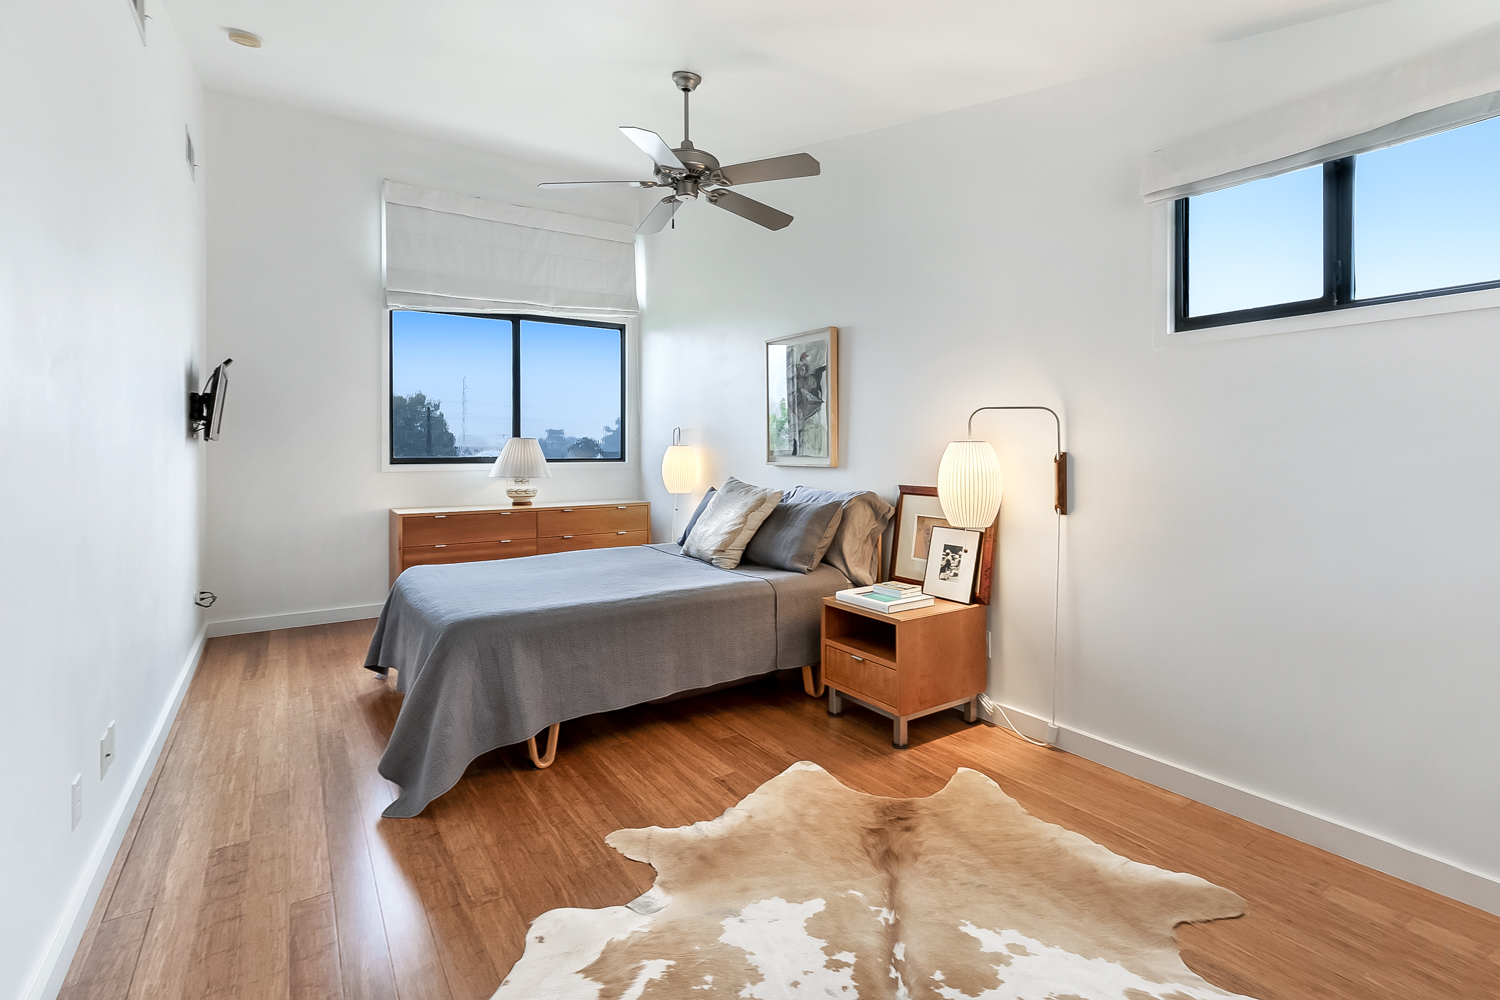 Uptown, Apartment, 1 beds, 1.5 baths, $2800 per month New Orleans Rental - devie image_7